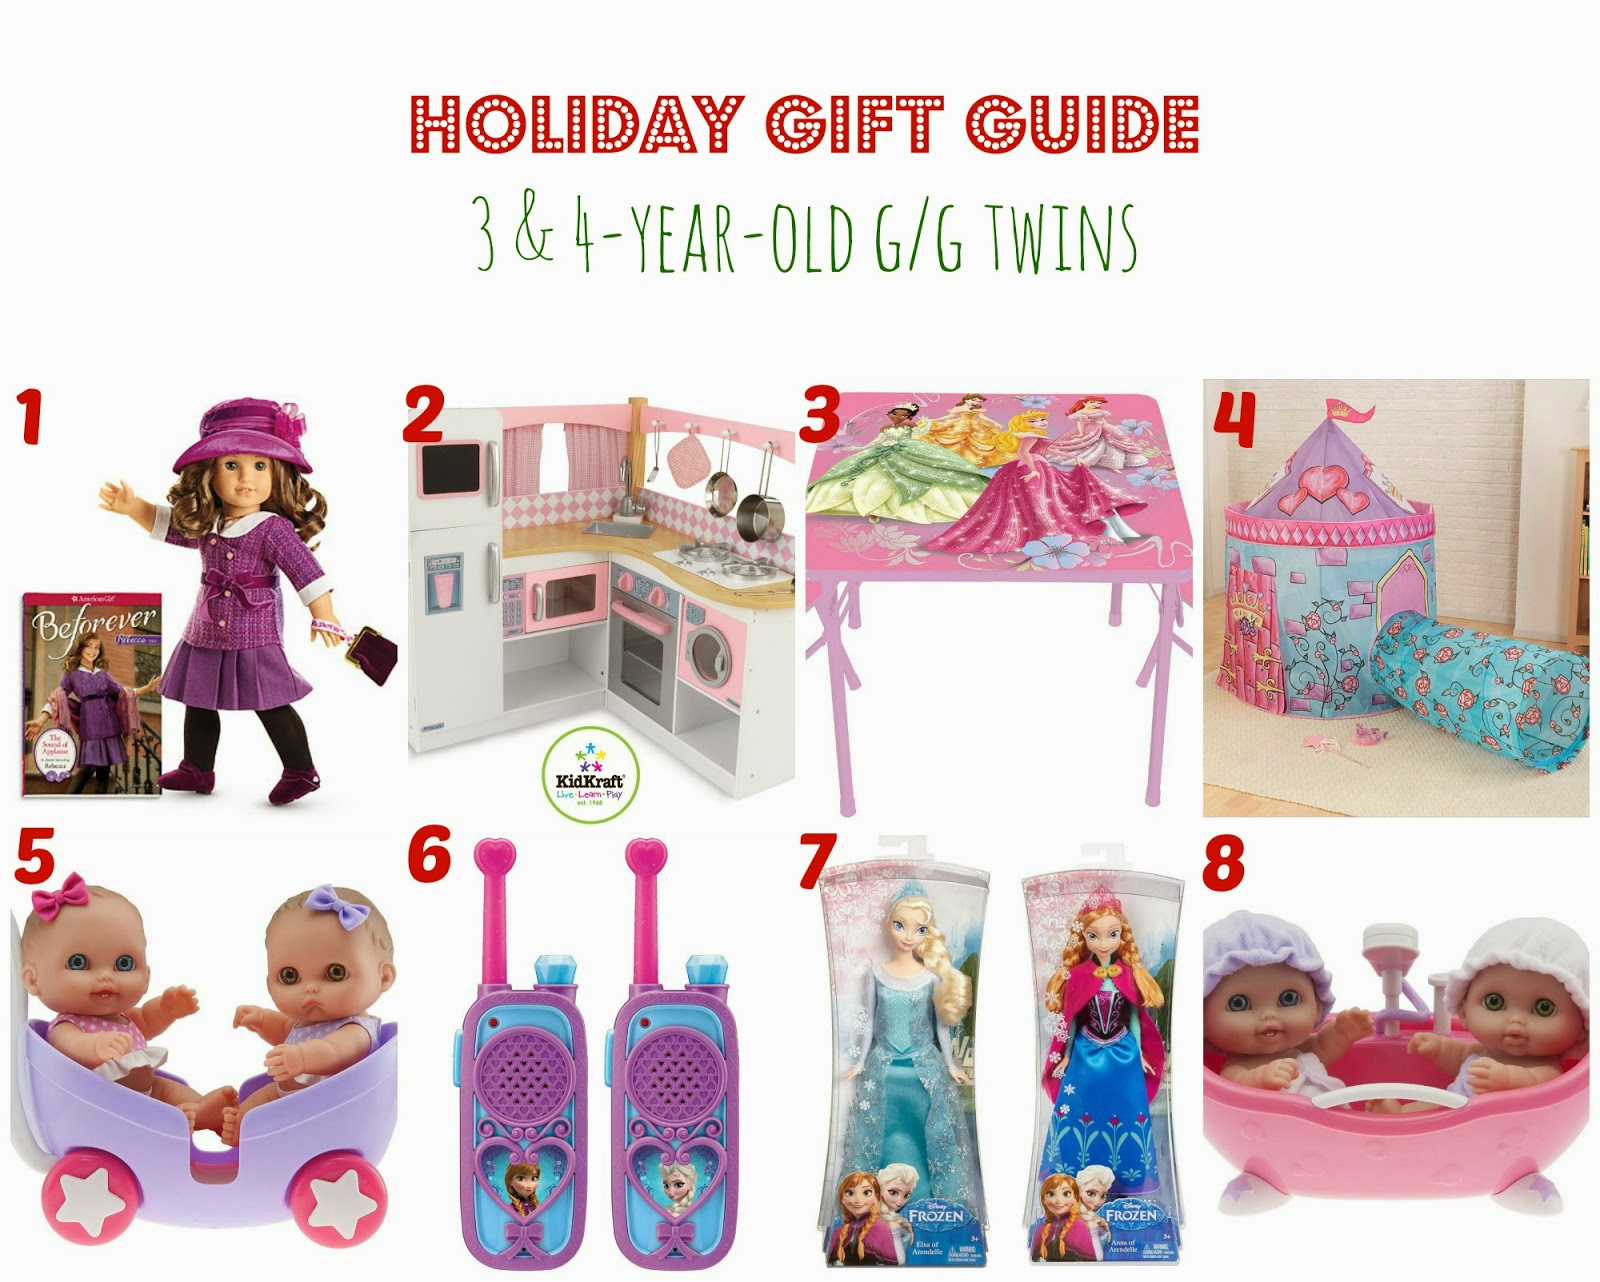 Twin Talk Blog Holiday Gift Guide 3 4 Year Old Twins